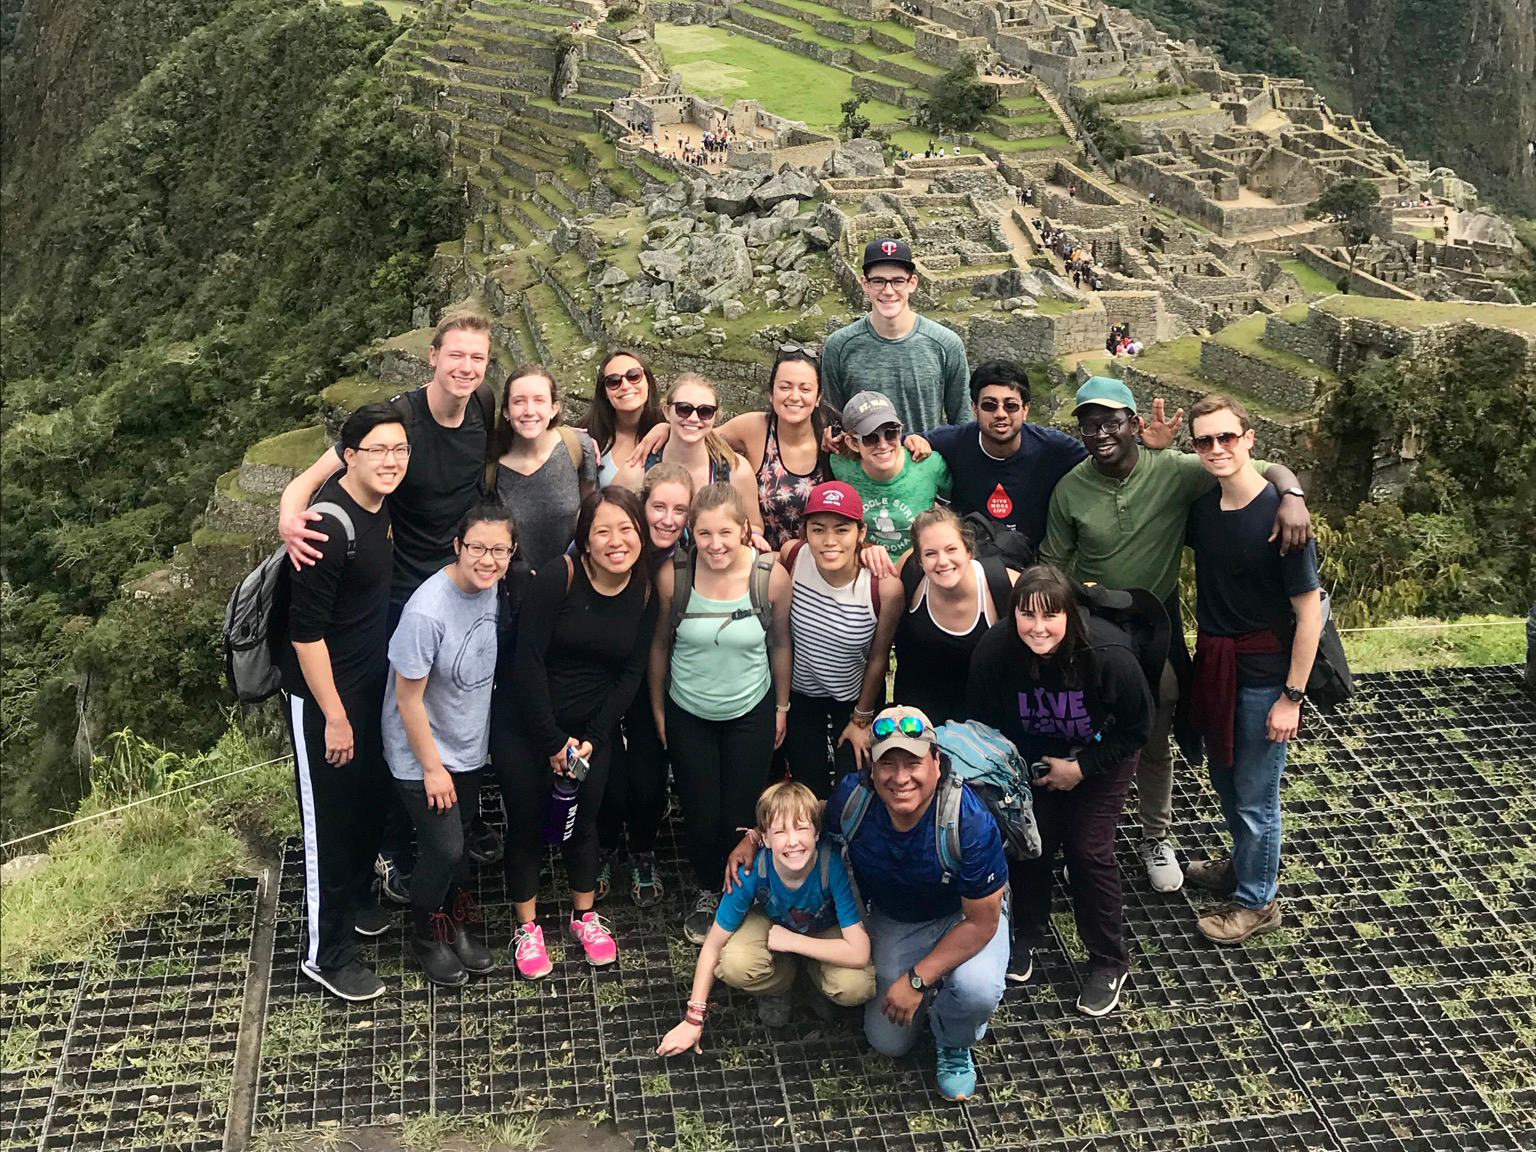 Oles at Machu Picchu as part of the Peruvian Medical Experience in January 2018